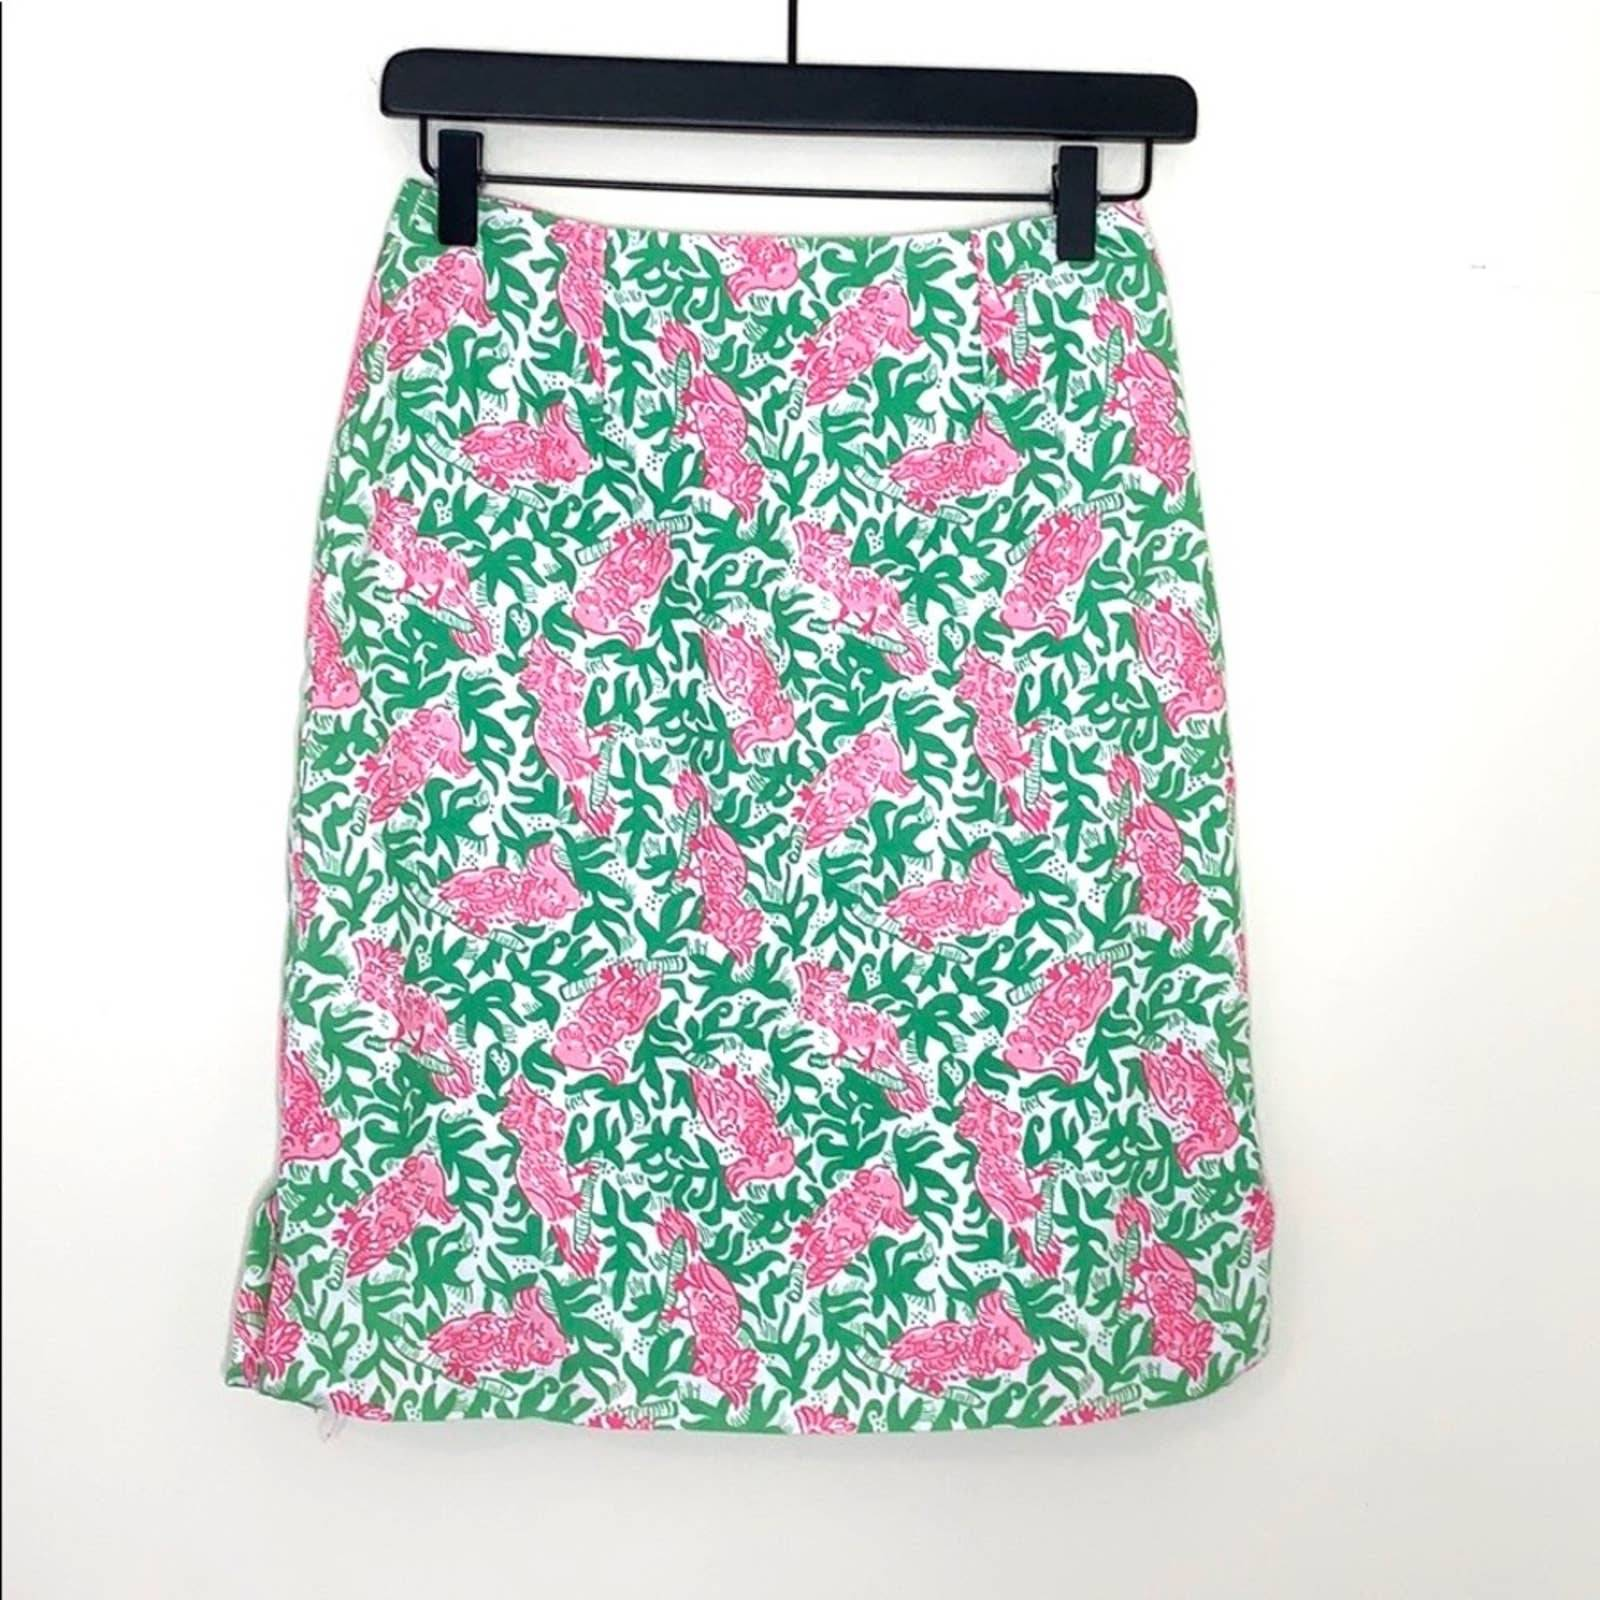 Lilly Pulitzer Parrot Pencil Skirt